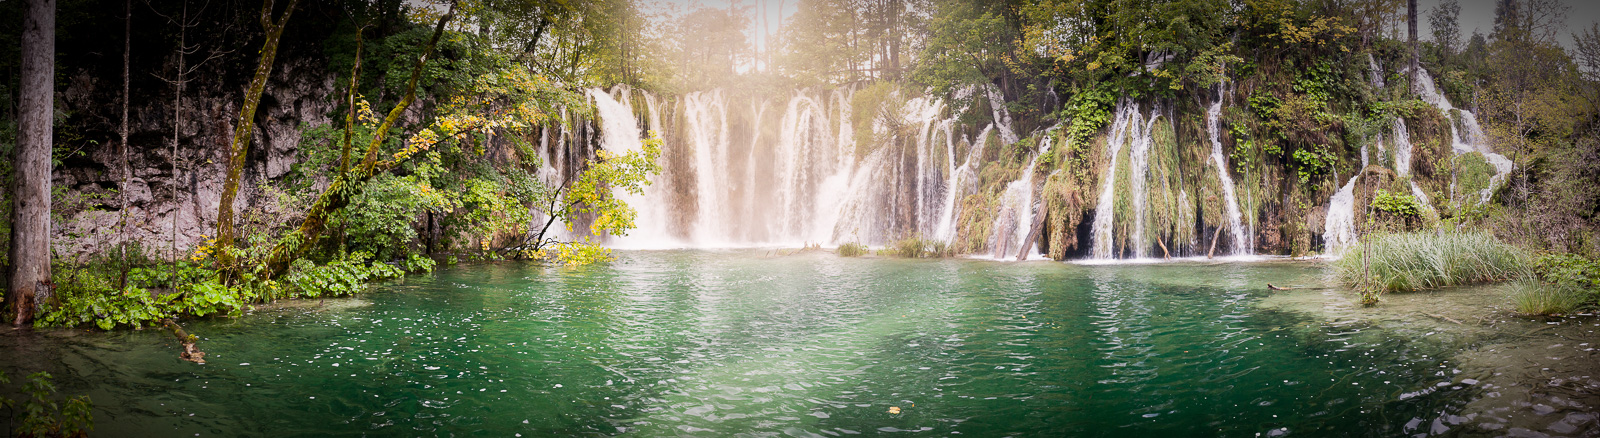 Plitvice waterfalls.